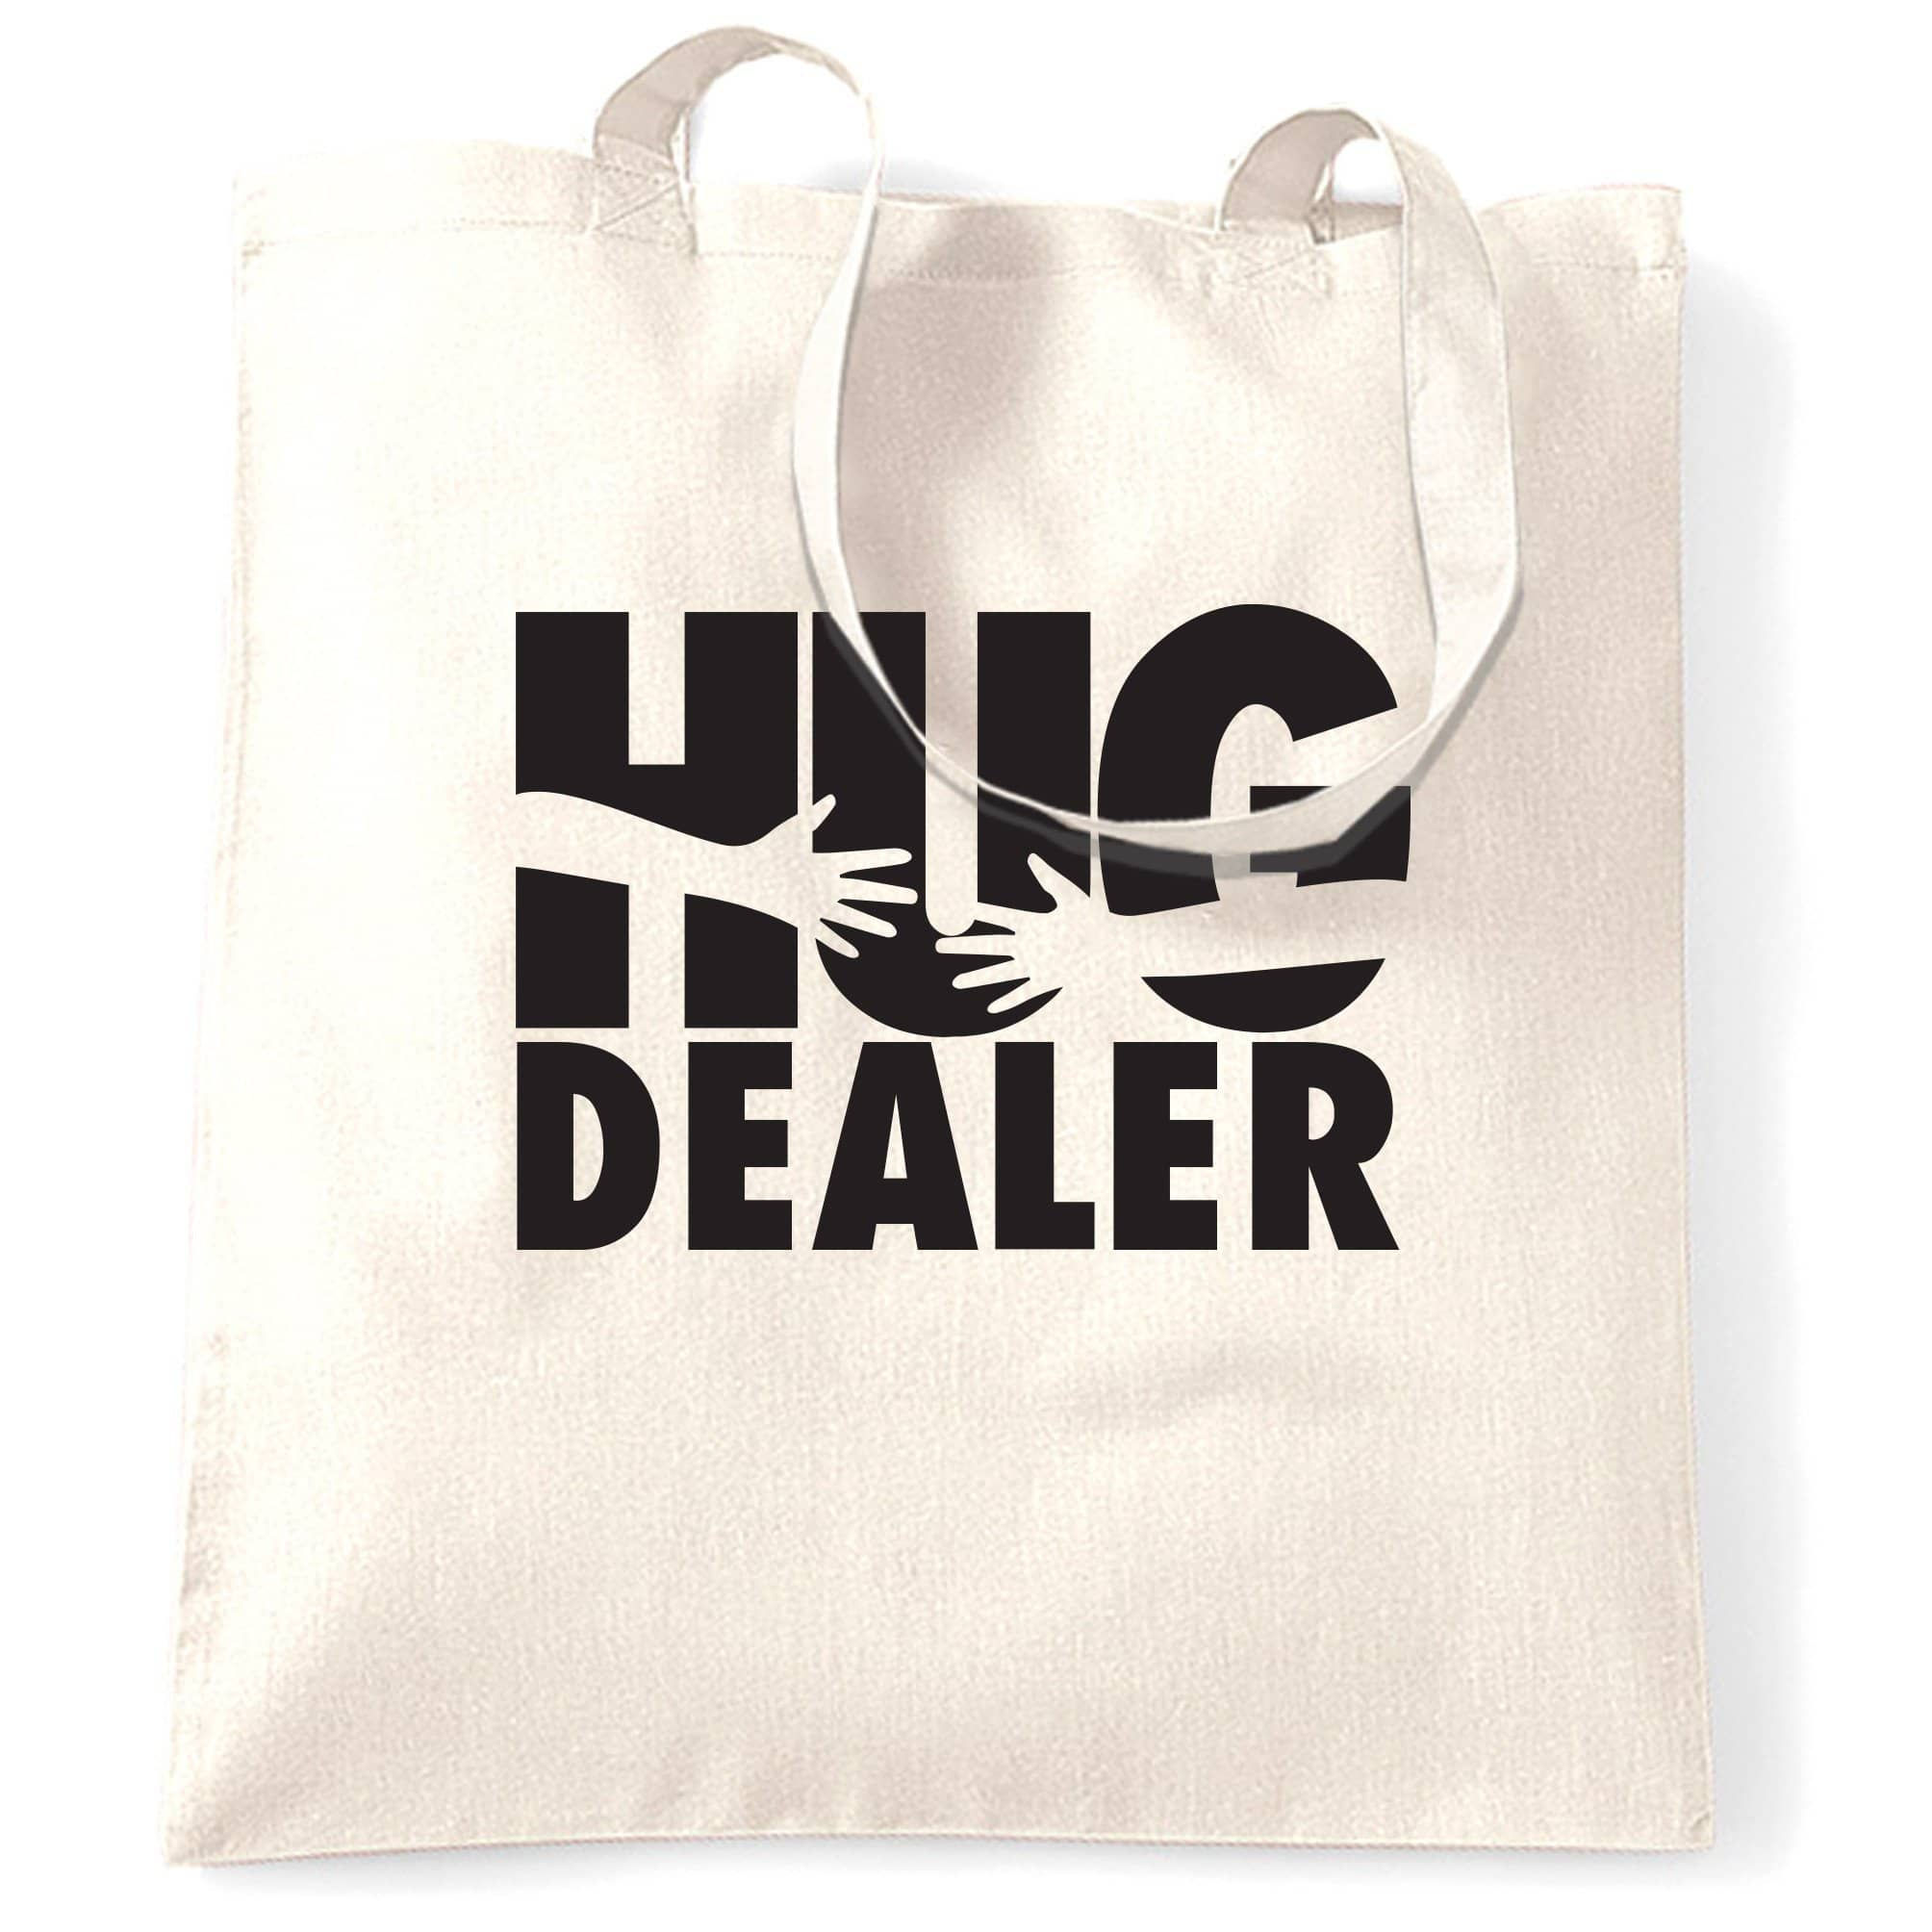 Novelty Love Tote Bag Hug Dealer Parody Slogan